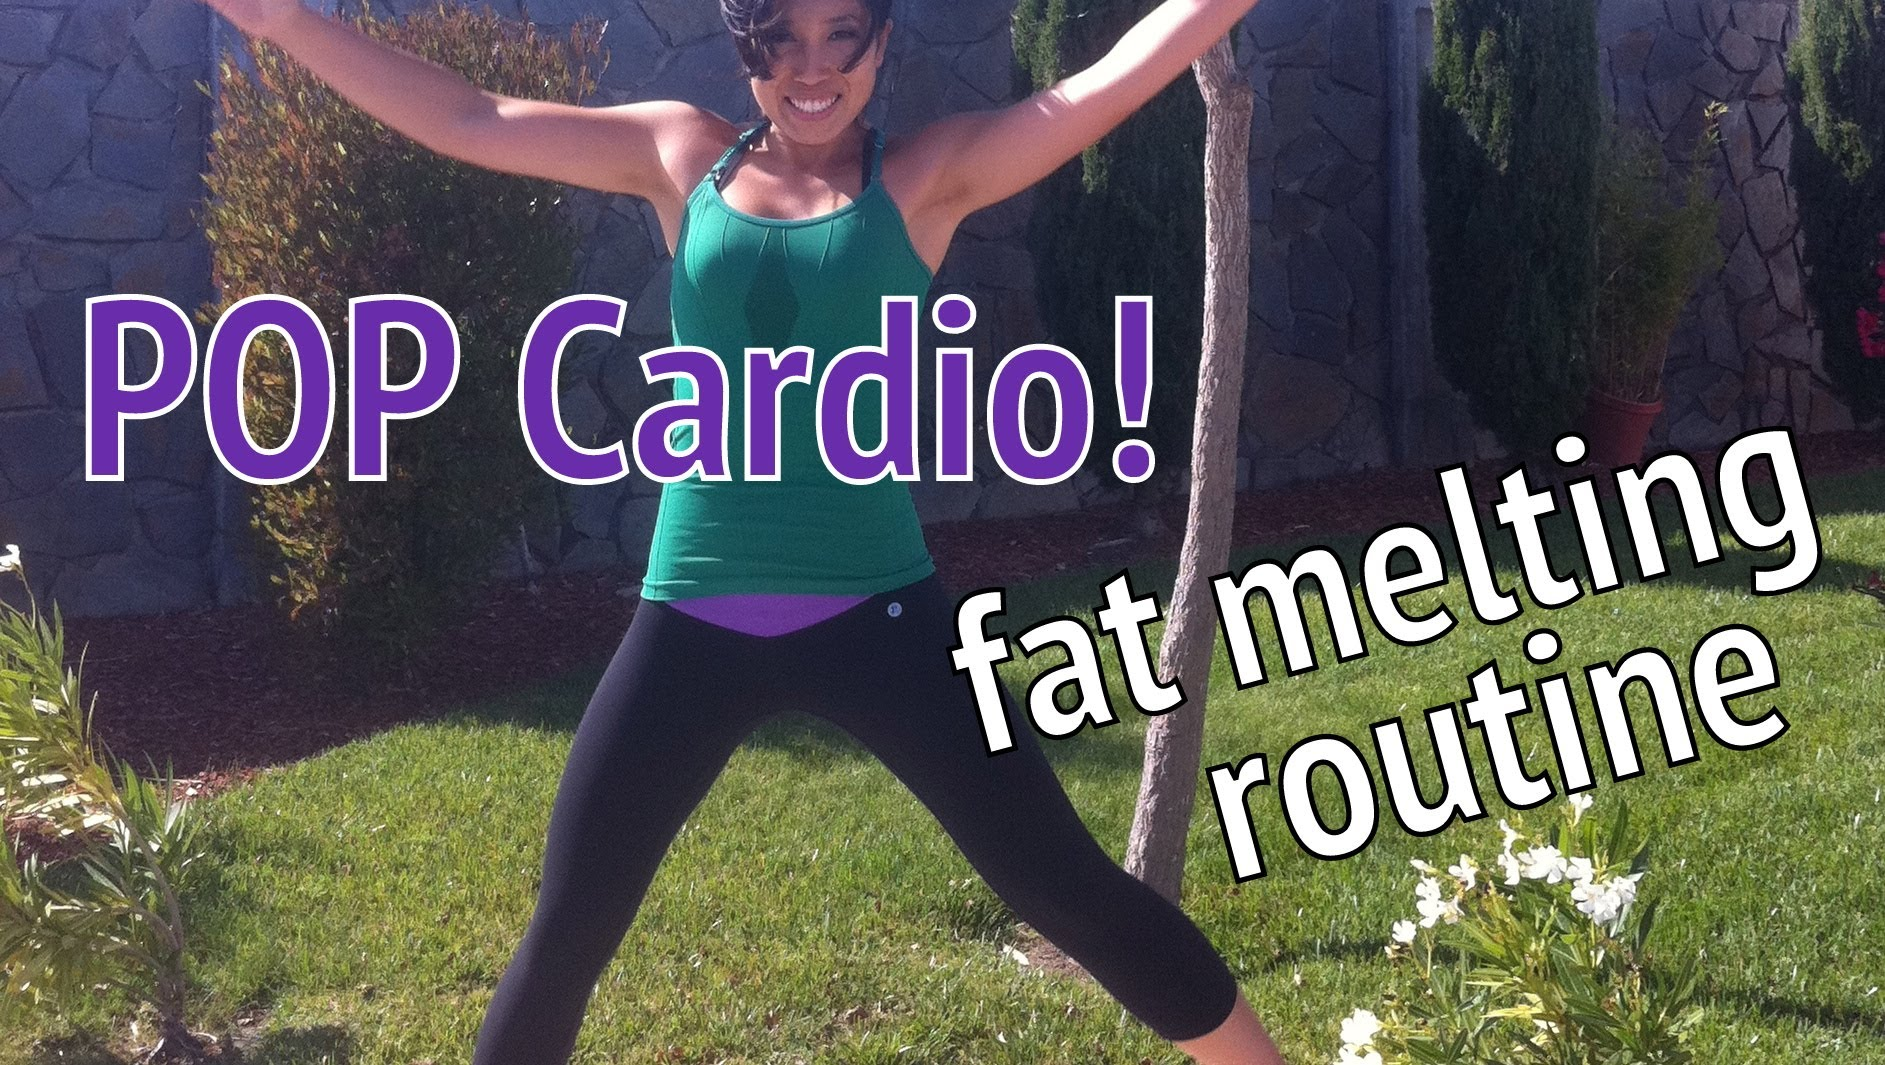 POP CARDIO: Fat Melting Routine